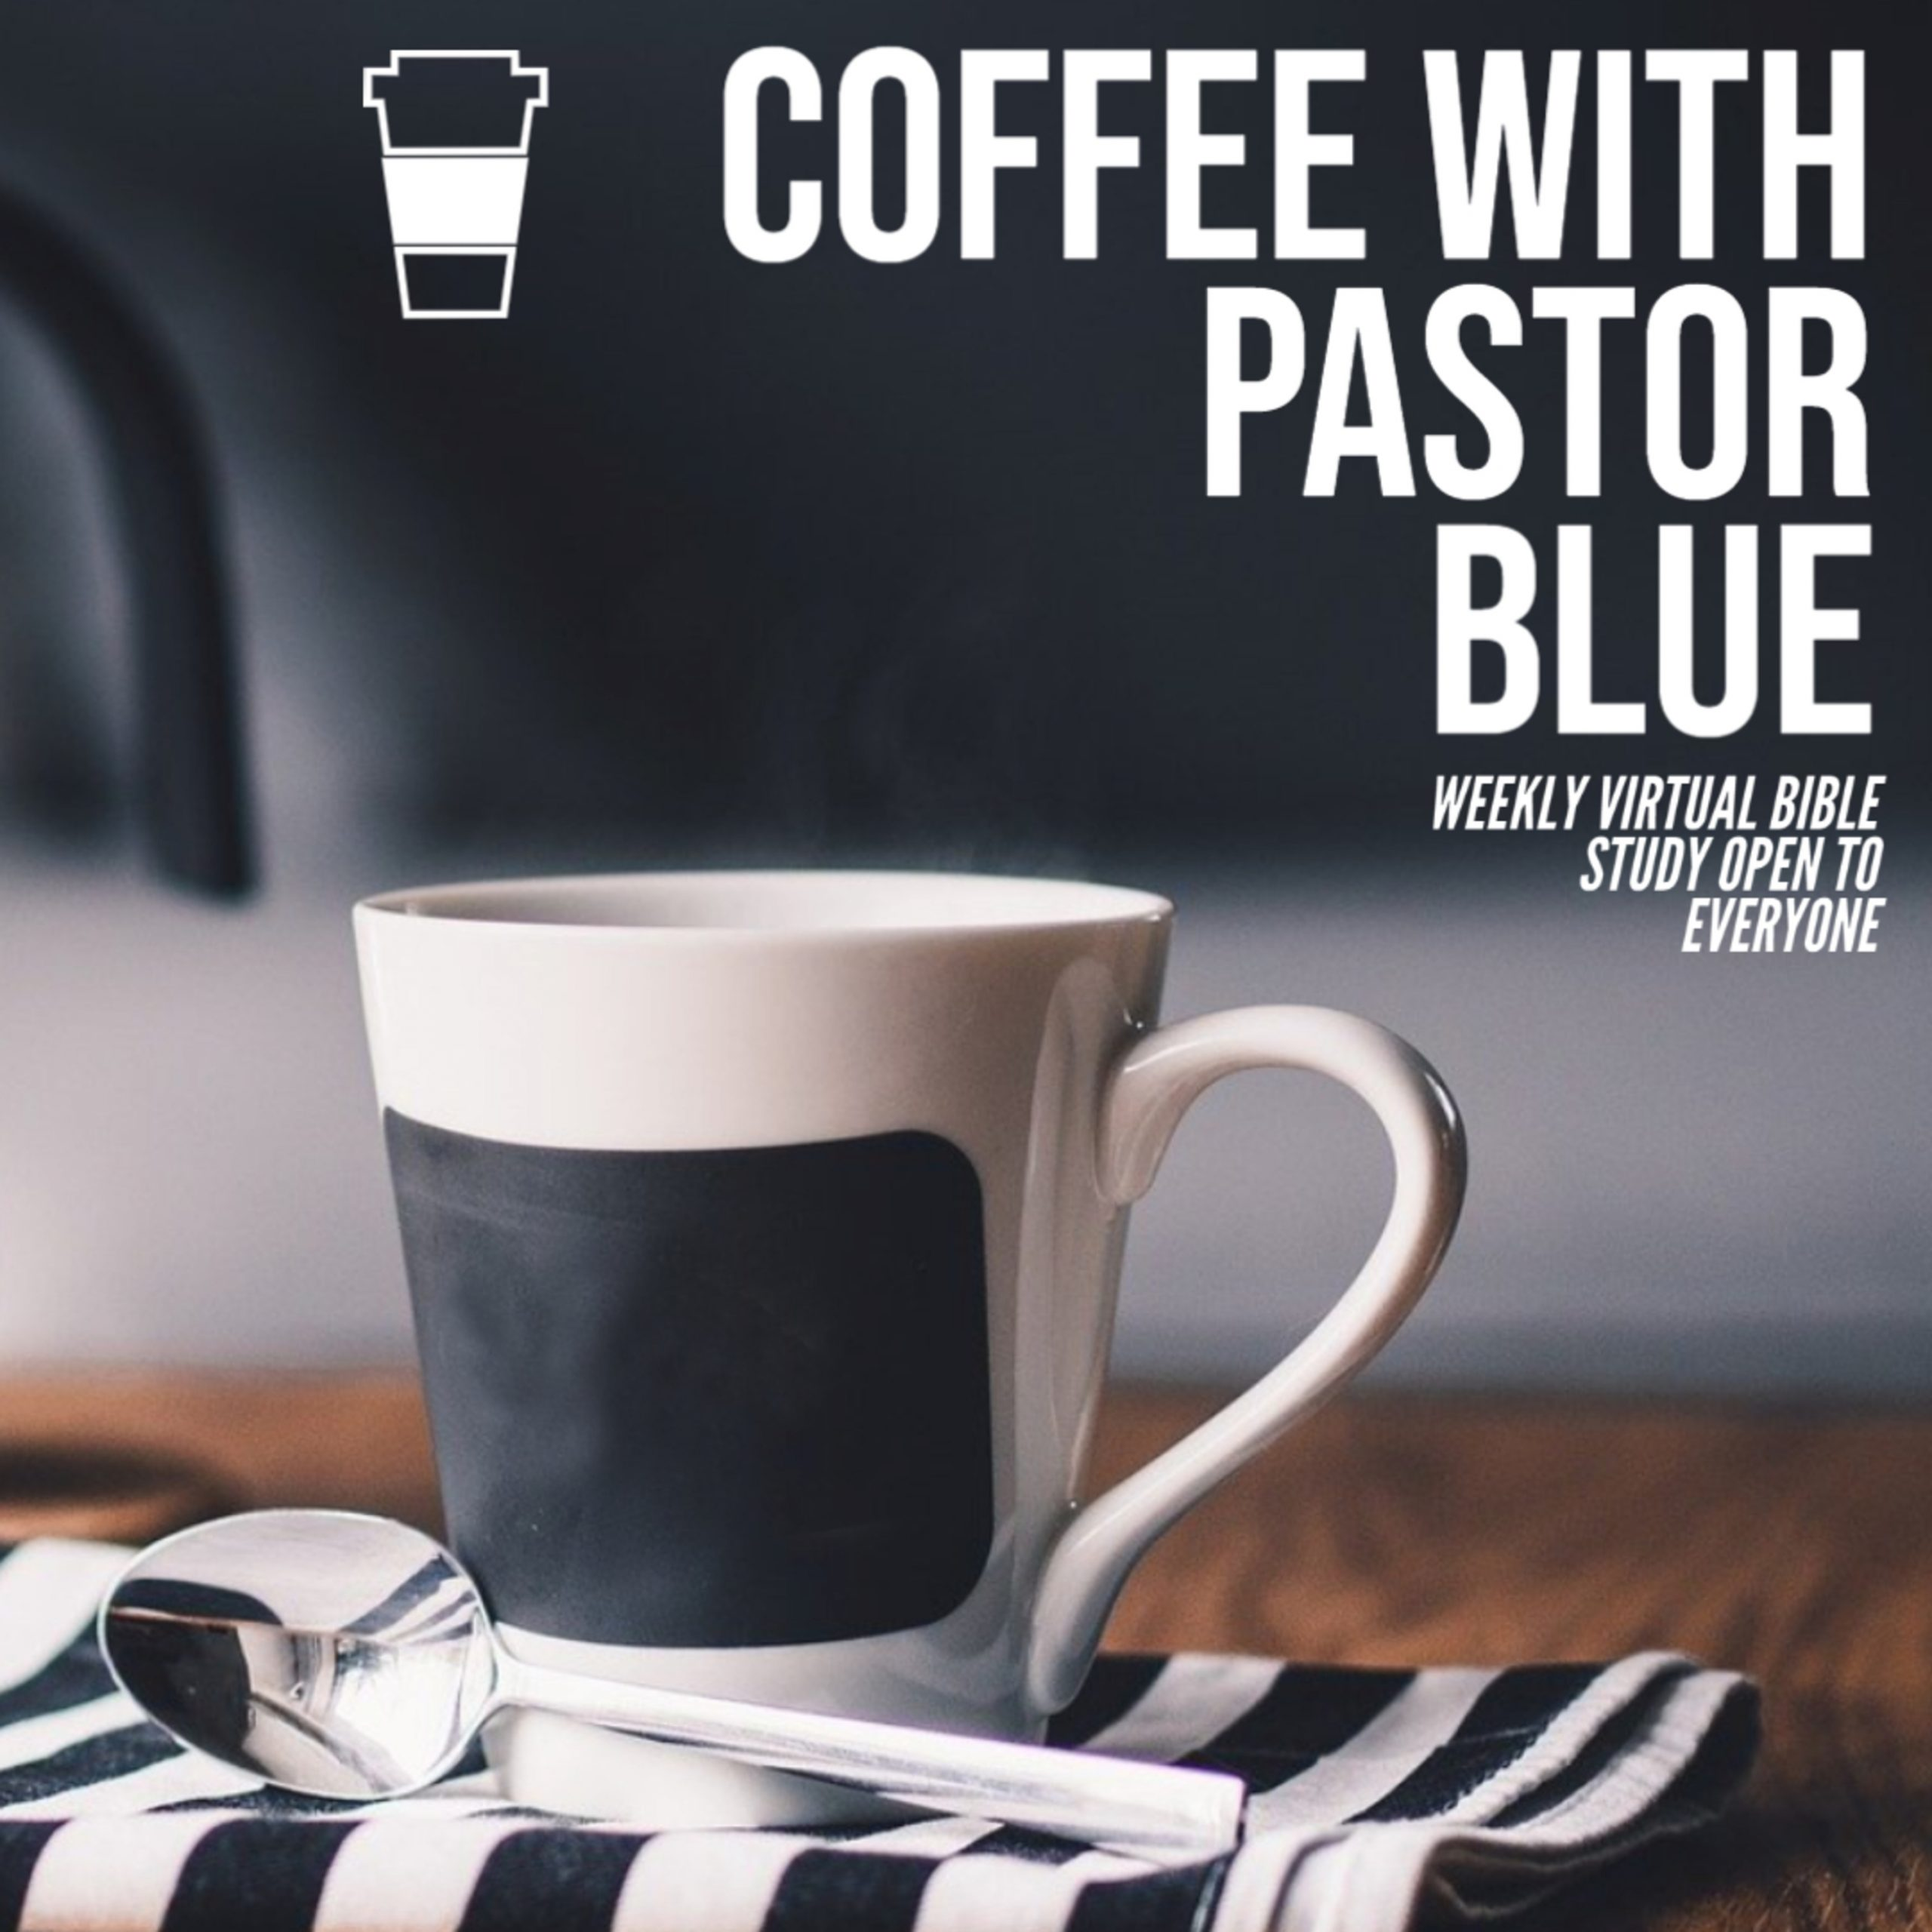 You are currently viewing Coffee with the Pastor Episode 5: Lent & The Future